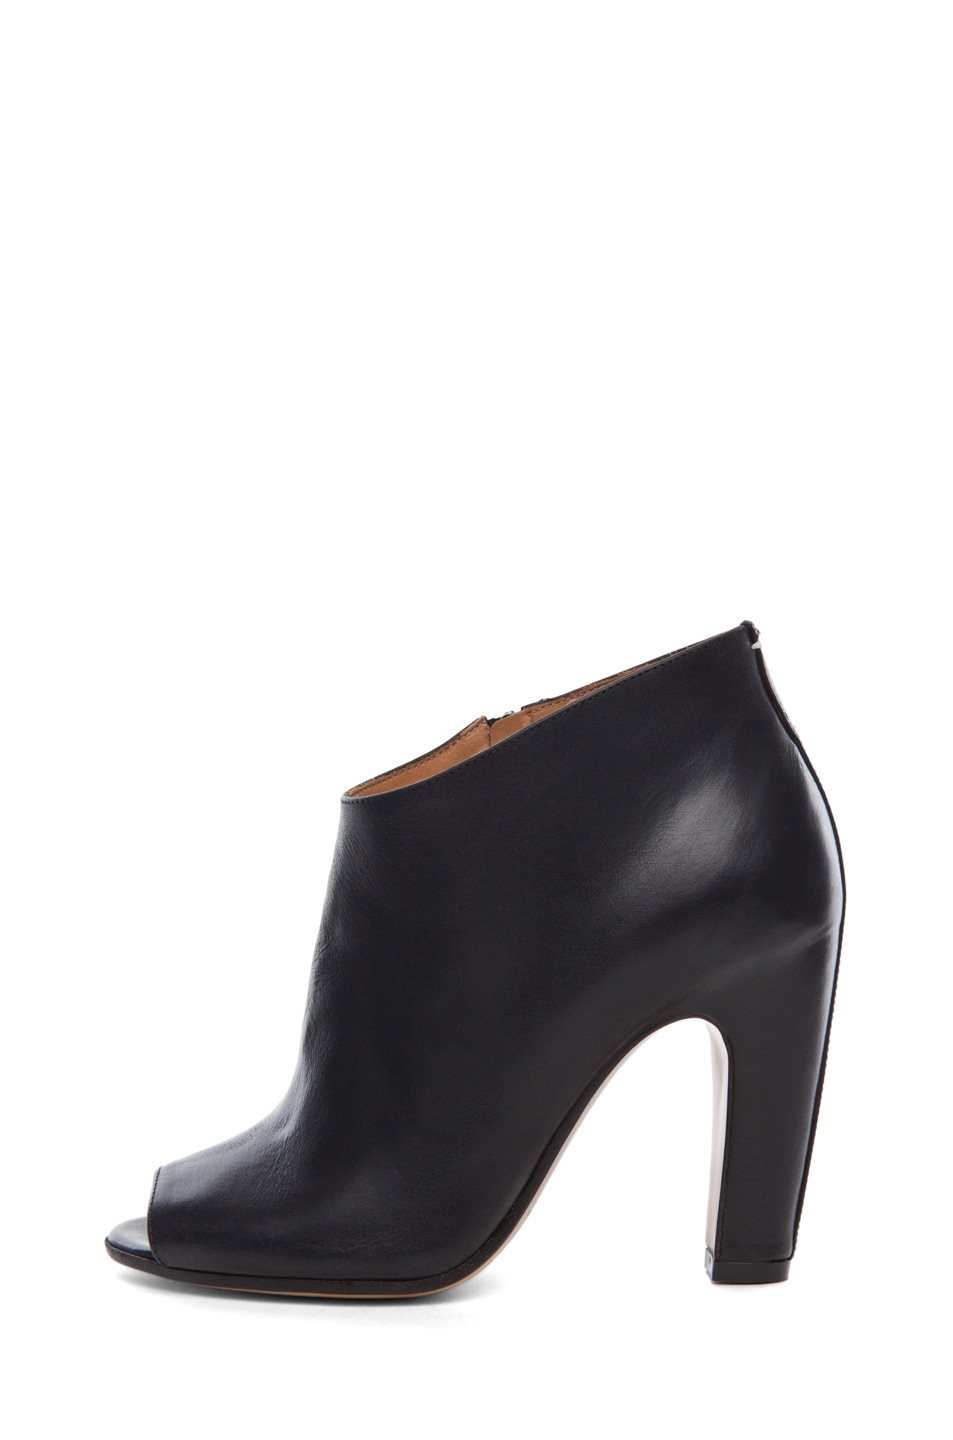 Image 1 of Maison Margiela Leather Open Toe Booties in Black